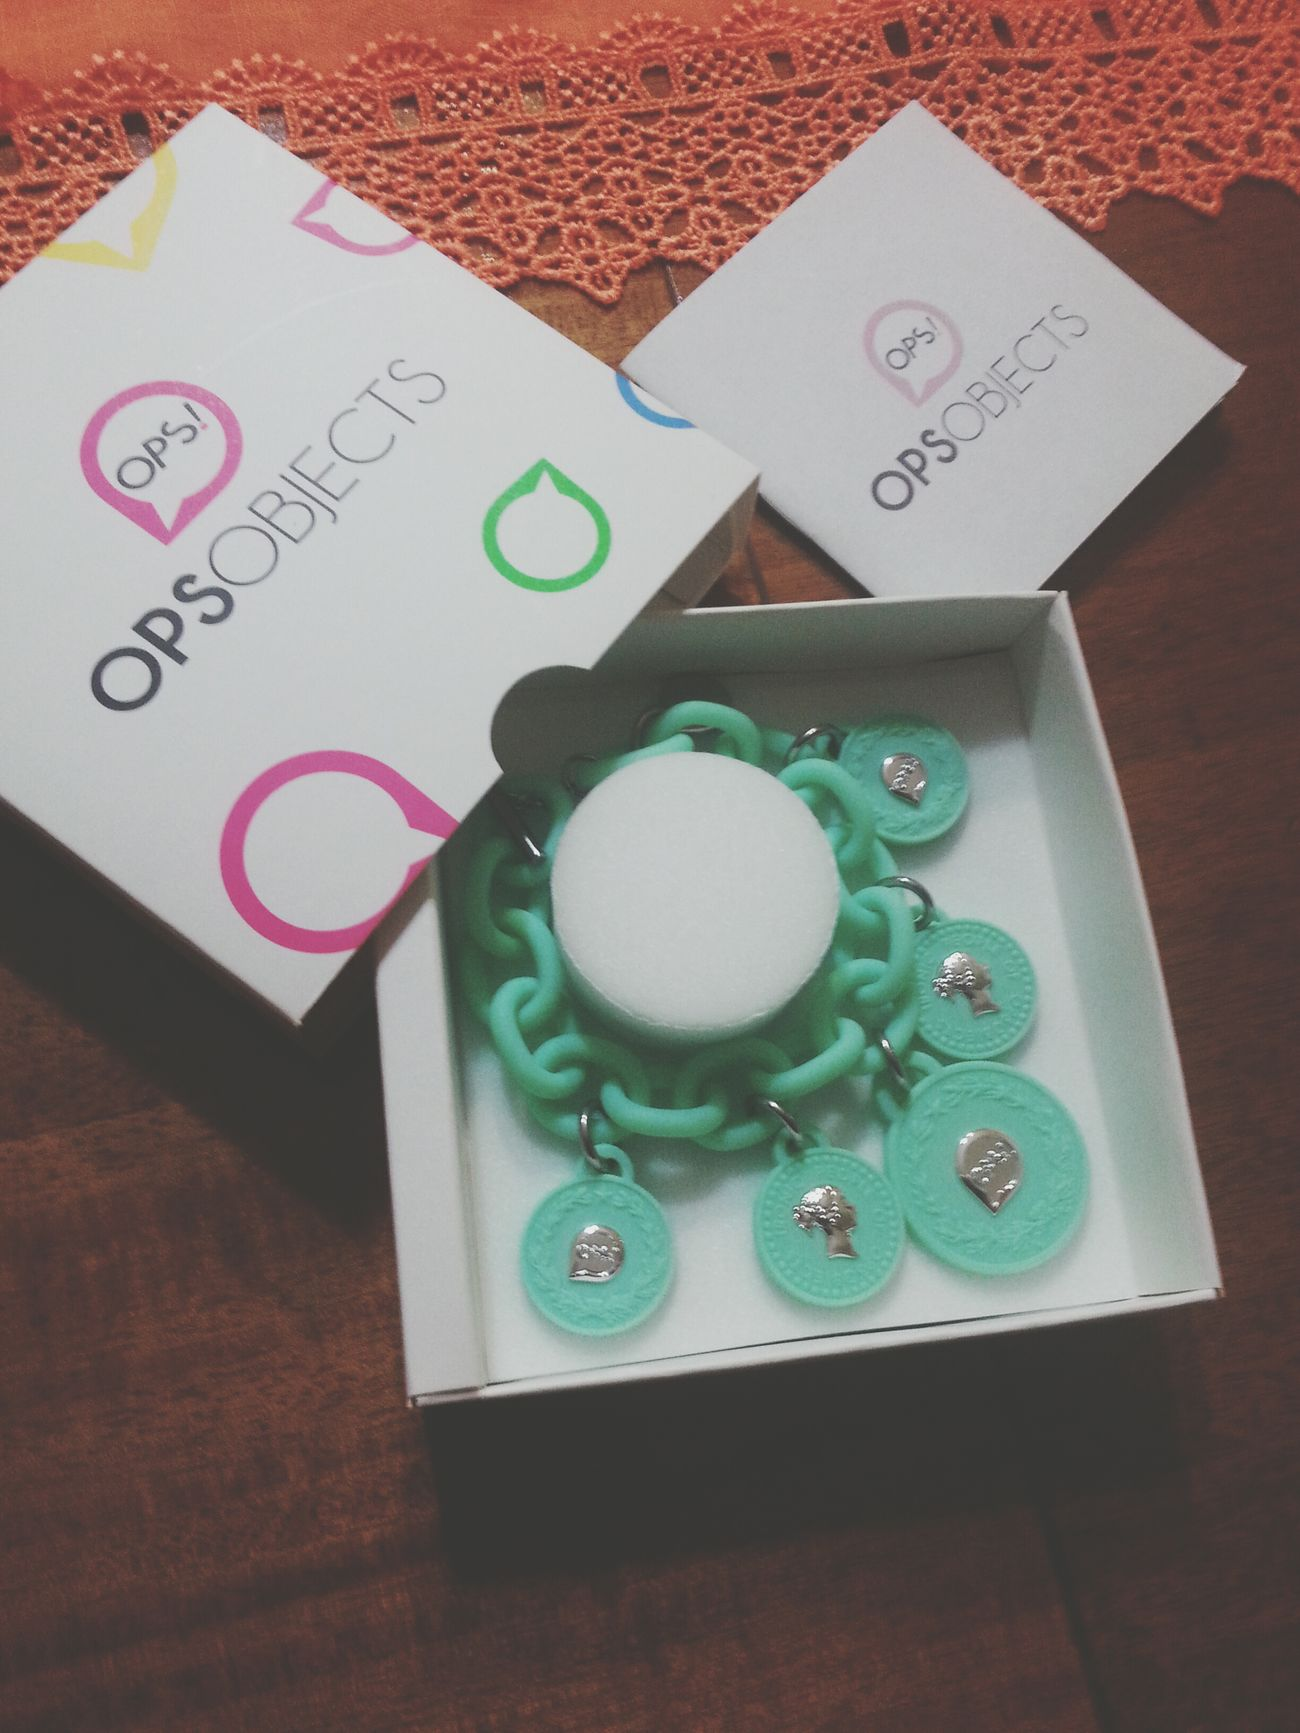 Regalini inaspettati *-* grazie amore ♥♥♥ Opsobjects Taking Photos Fallowme Fallowme Instagram